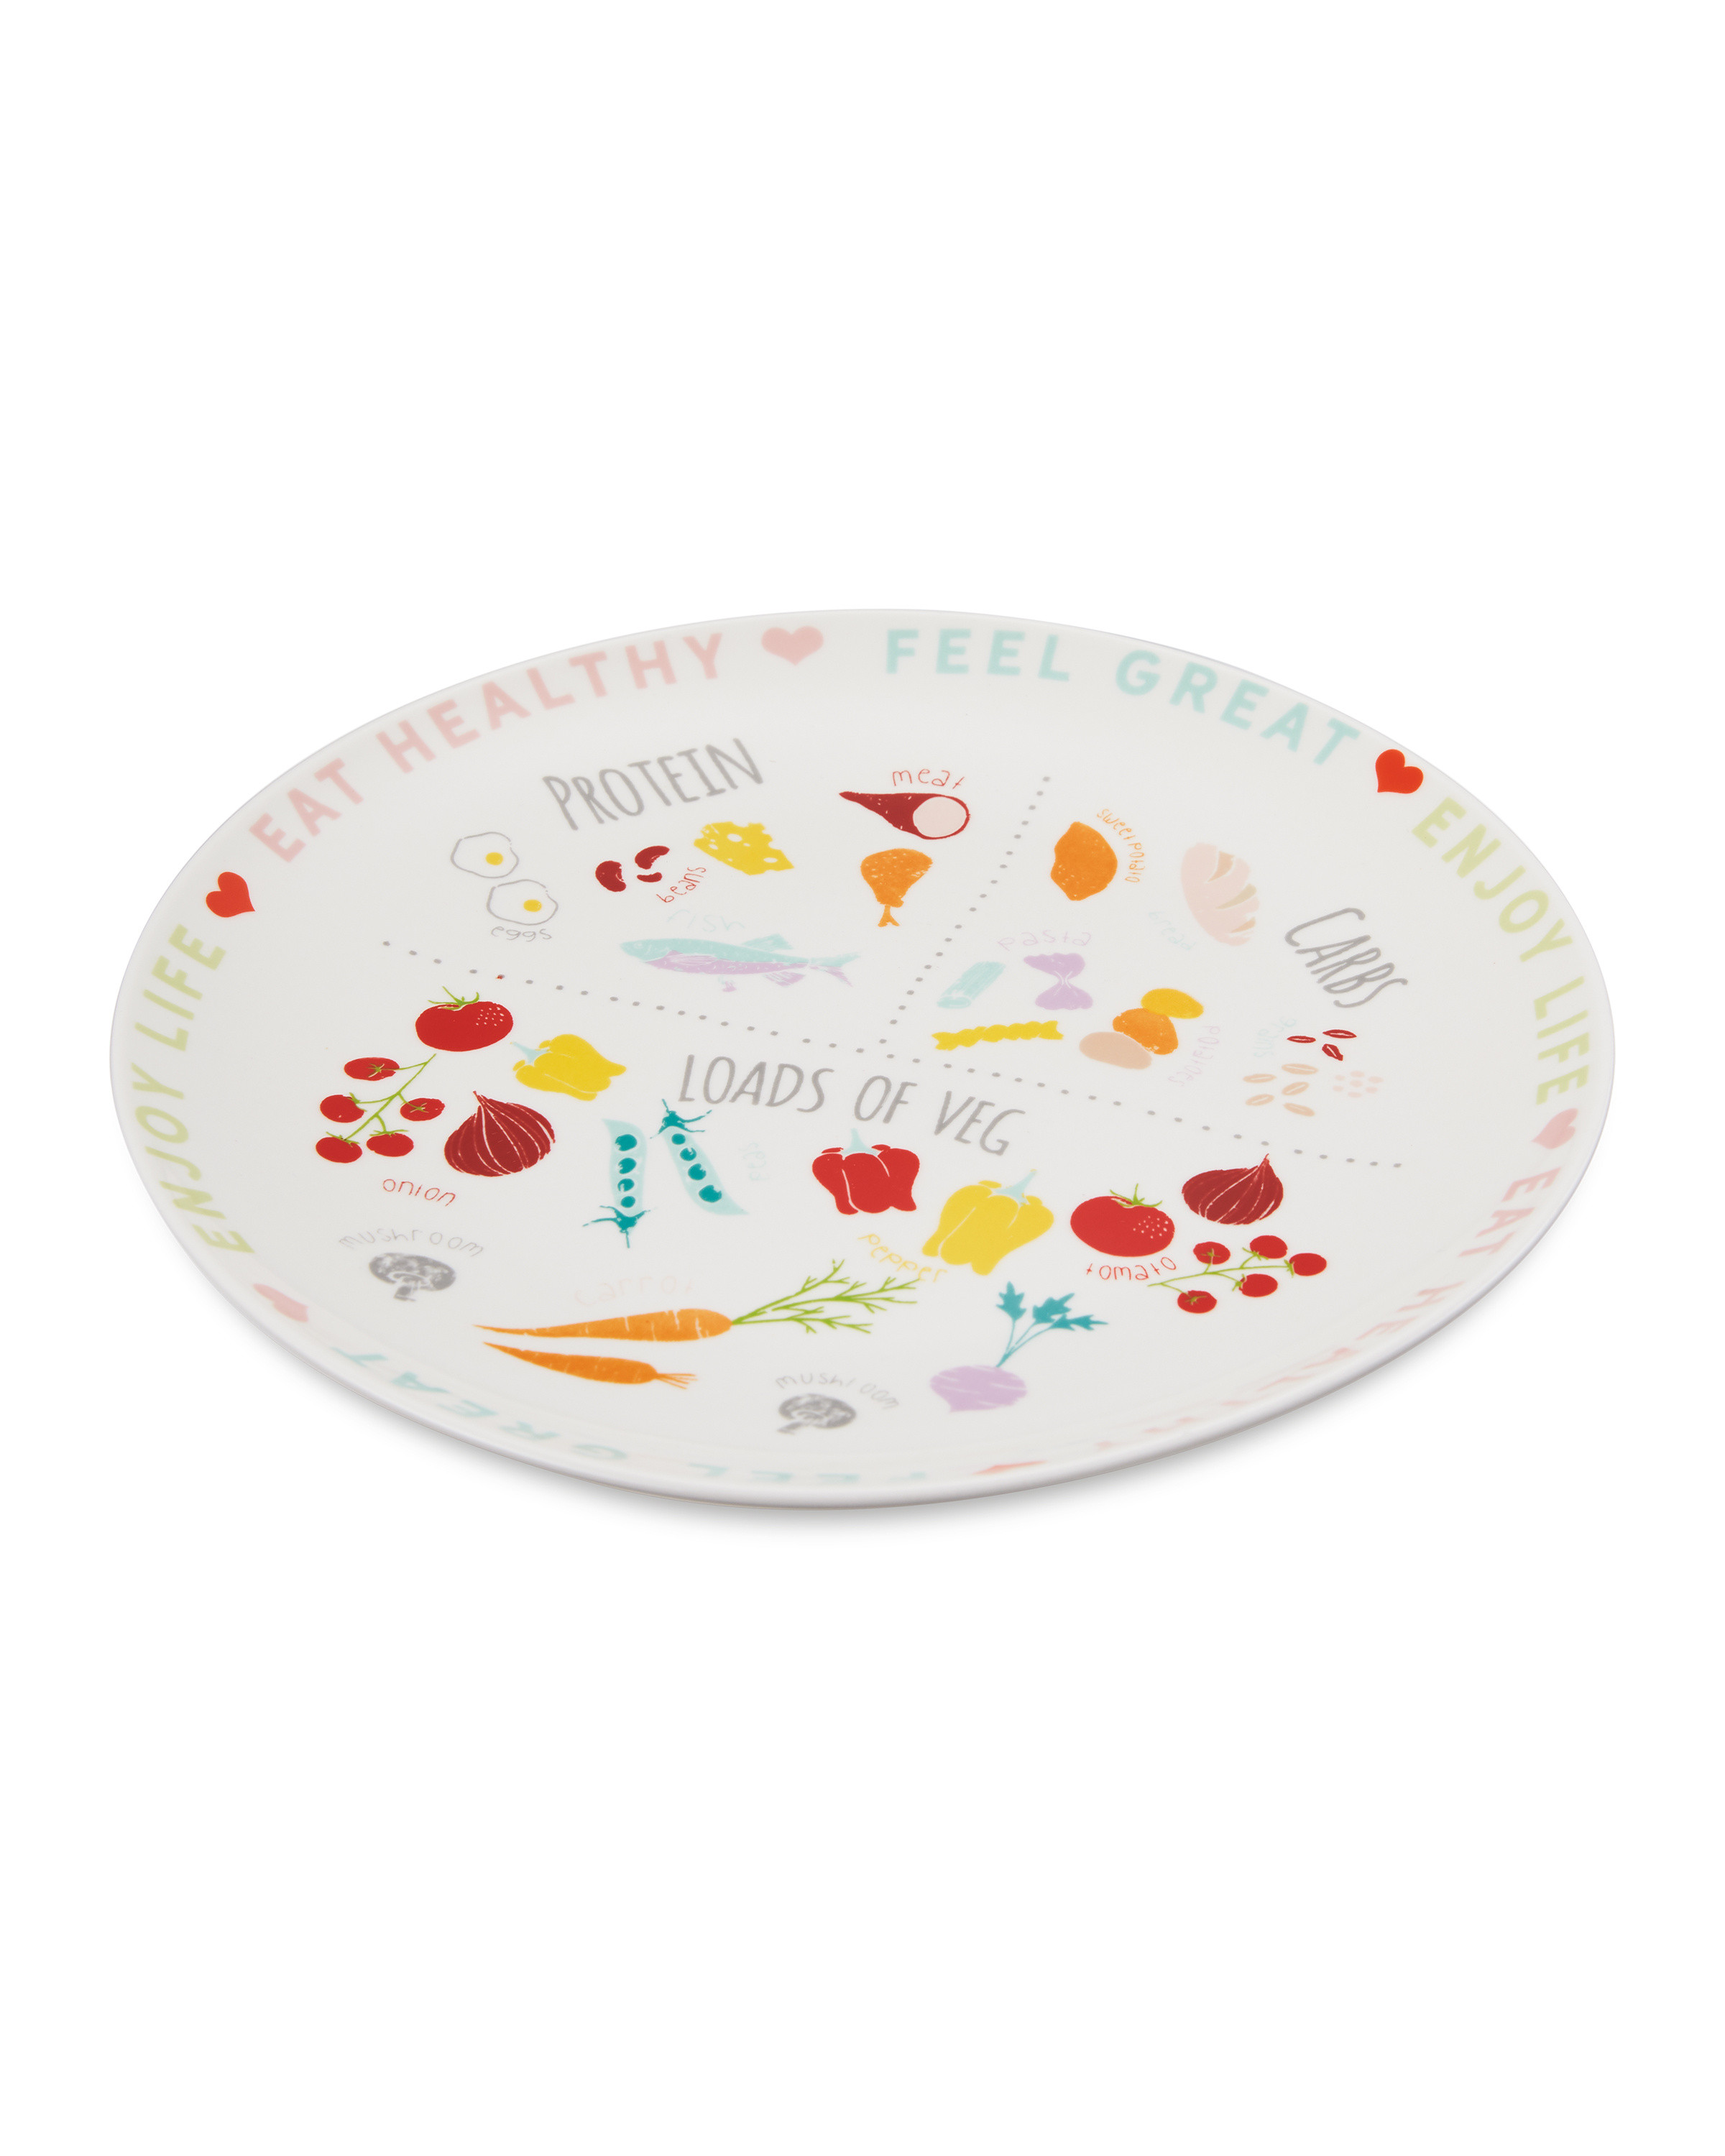 Illustrated Portion Control Plate